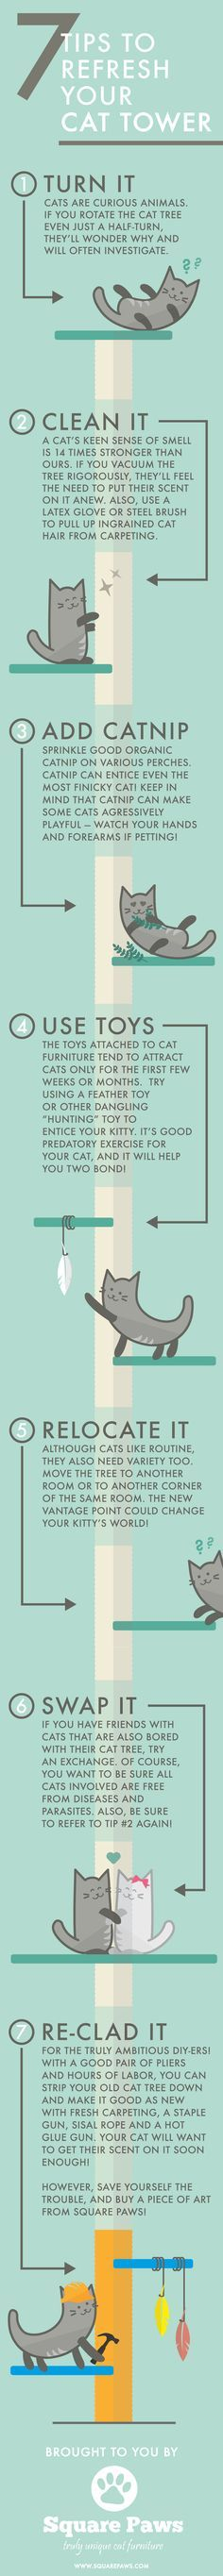 ♥ Cat Care Tips ♥ 7 Tips to Refresh Your Cat Tower — Square Paws